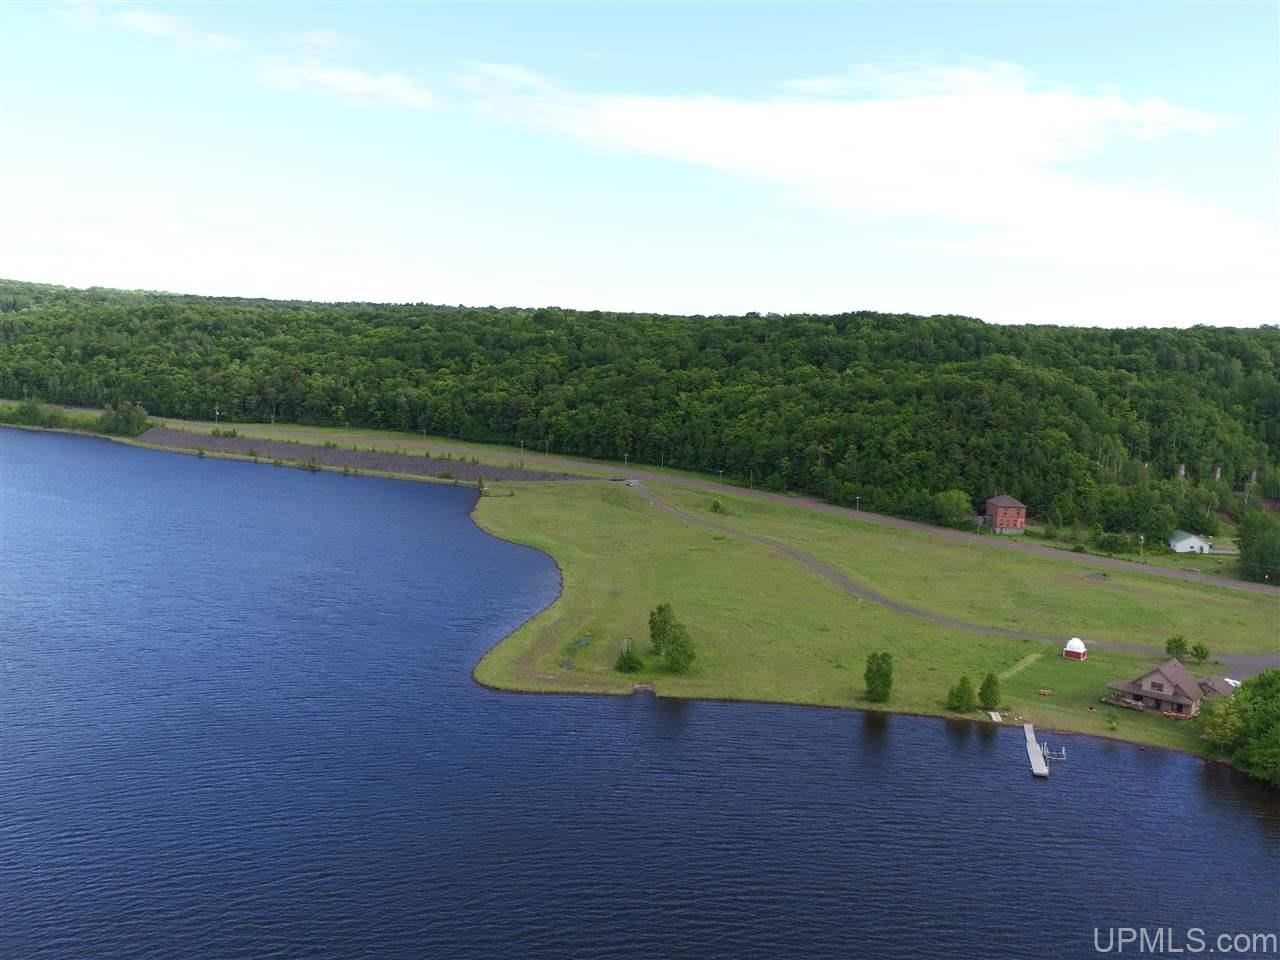 Photo of TBD A B C D Canal, Houghton, MI 49931 (MLS # 1124190)